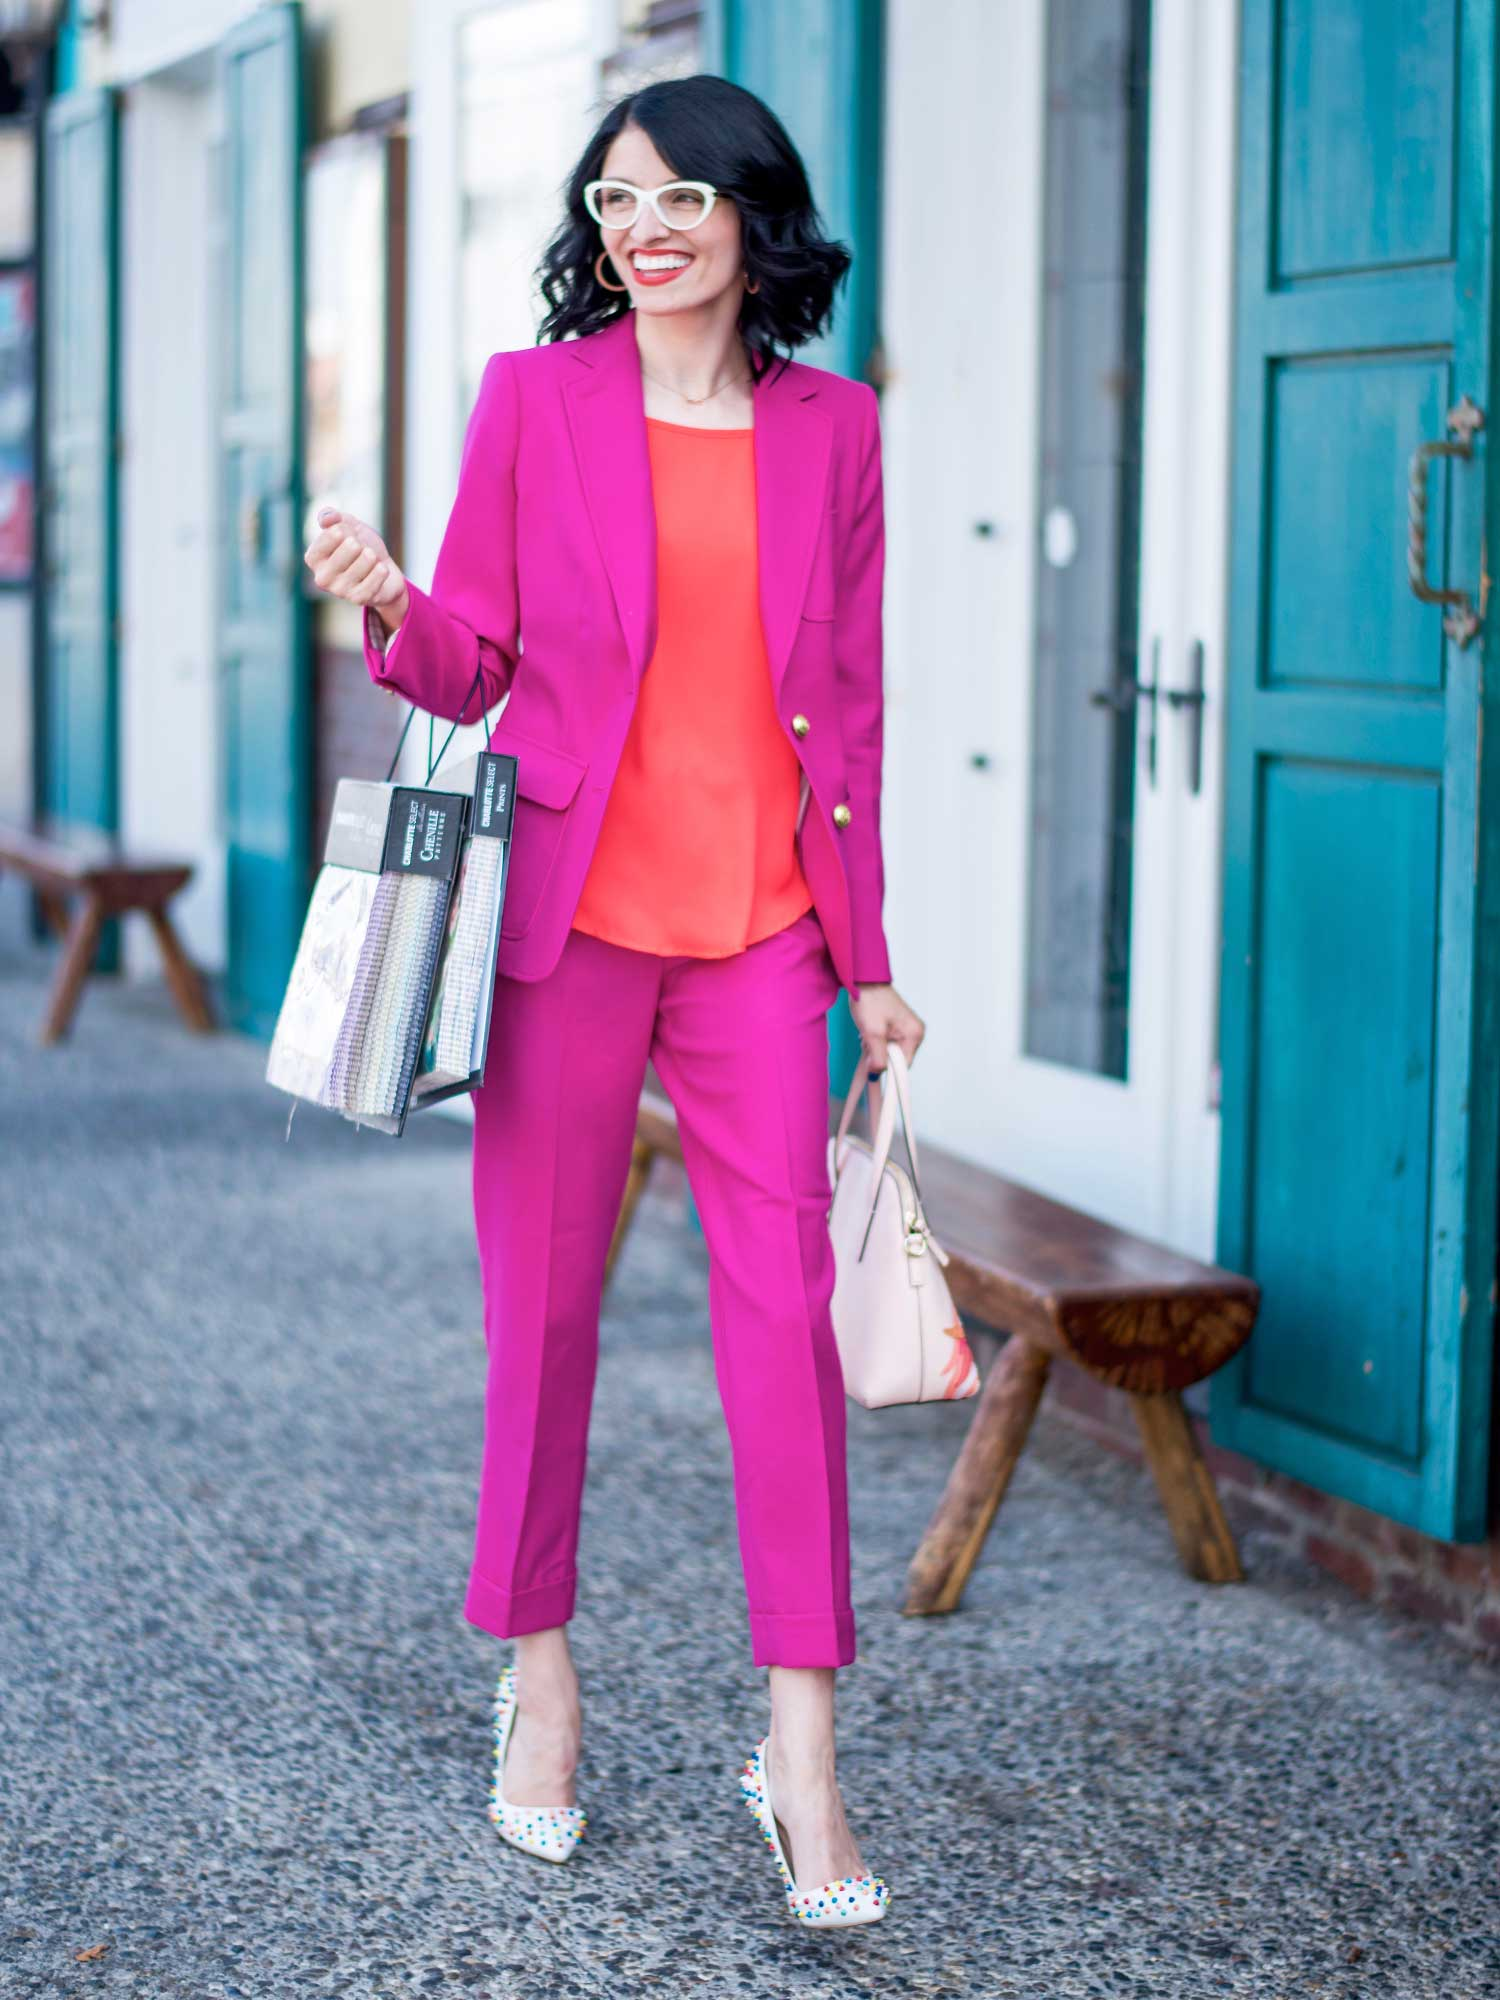 jenna-pilant-san-diego-fashion-blogger-lucky-little-mustardseed-how-to-dress-for-a-business-meeting-j-crew-womens-suit-2